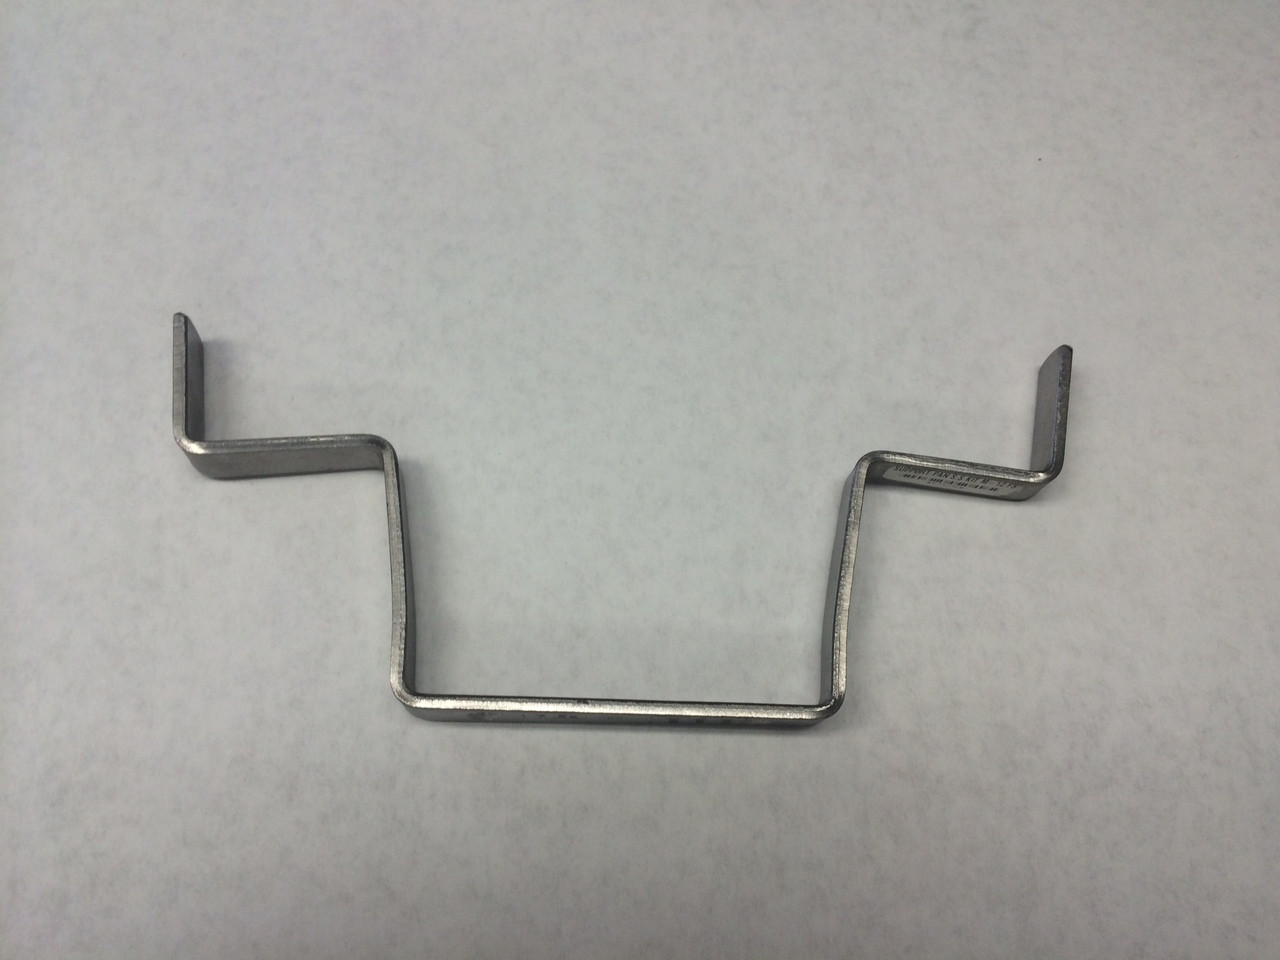 ProCut KG-12FS - Support Pan Bracket - 05-73236 - 05-75309